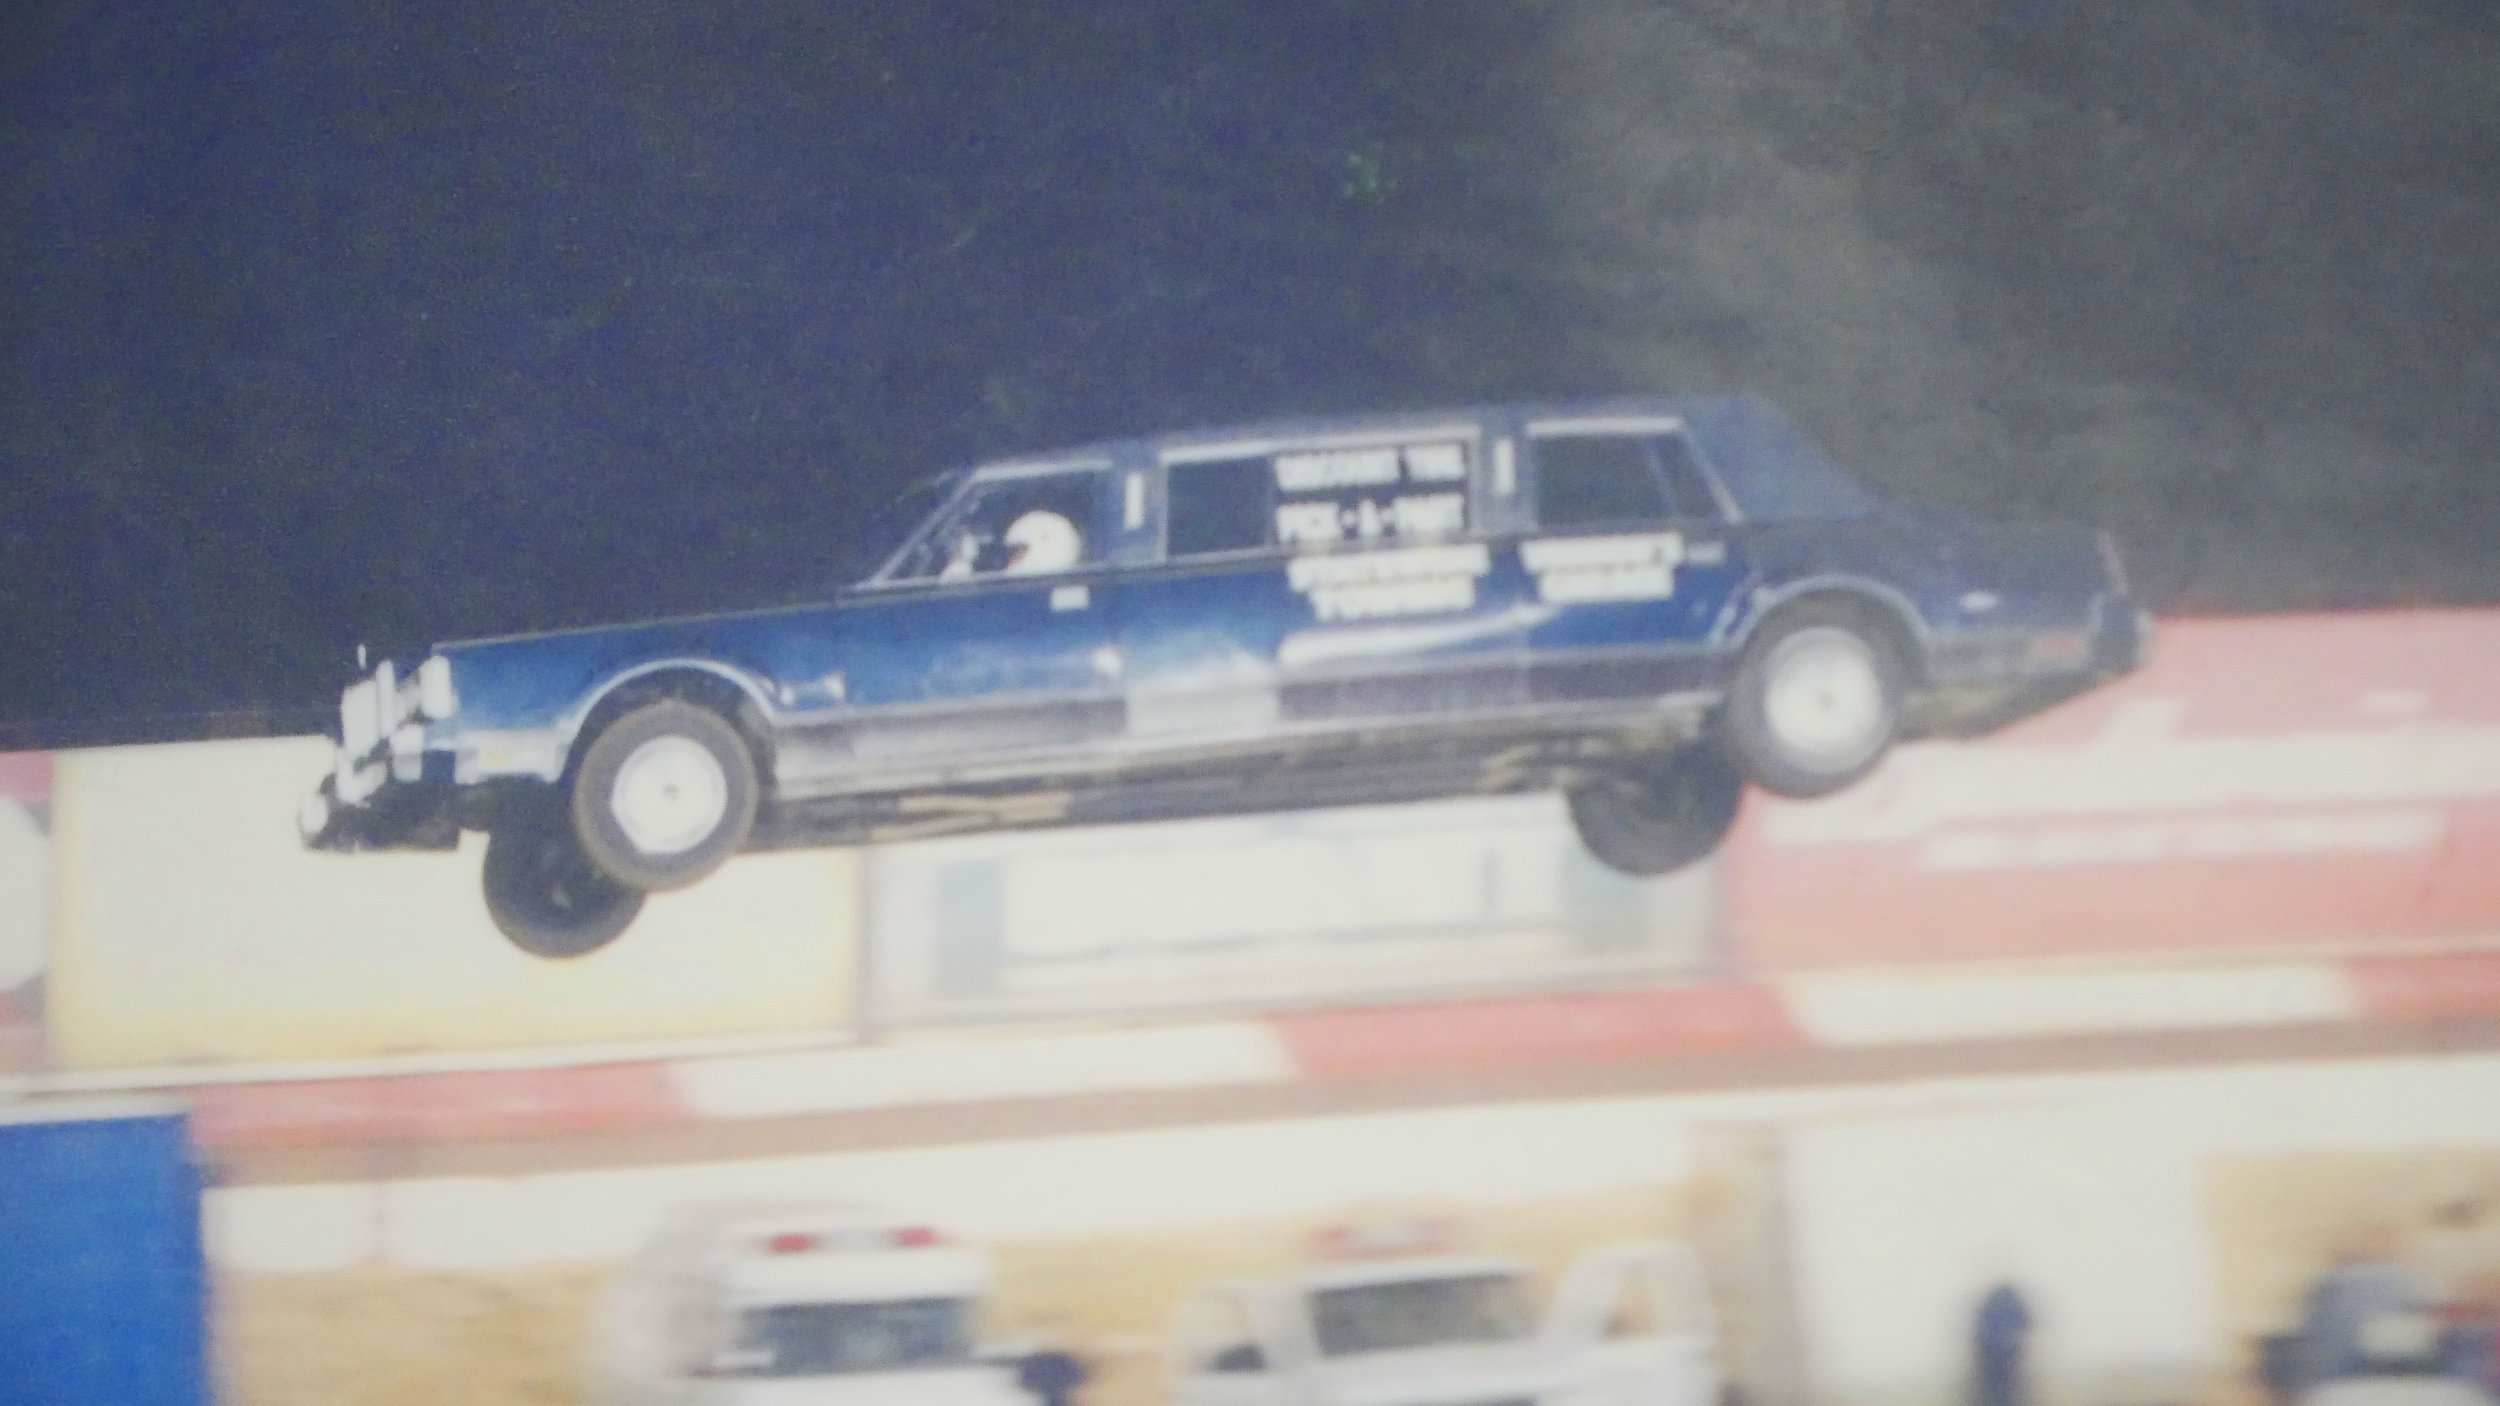 'Mad Mike's' World record limo jump in Perris, CA, 2002.